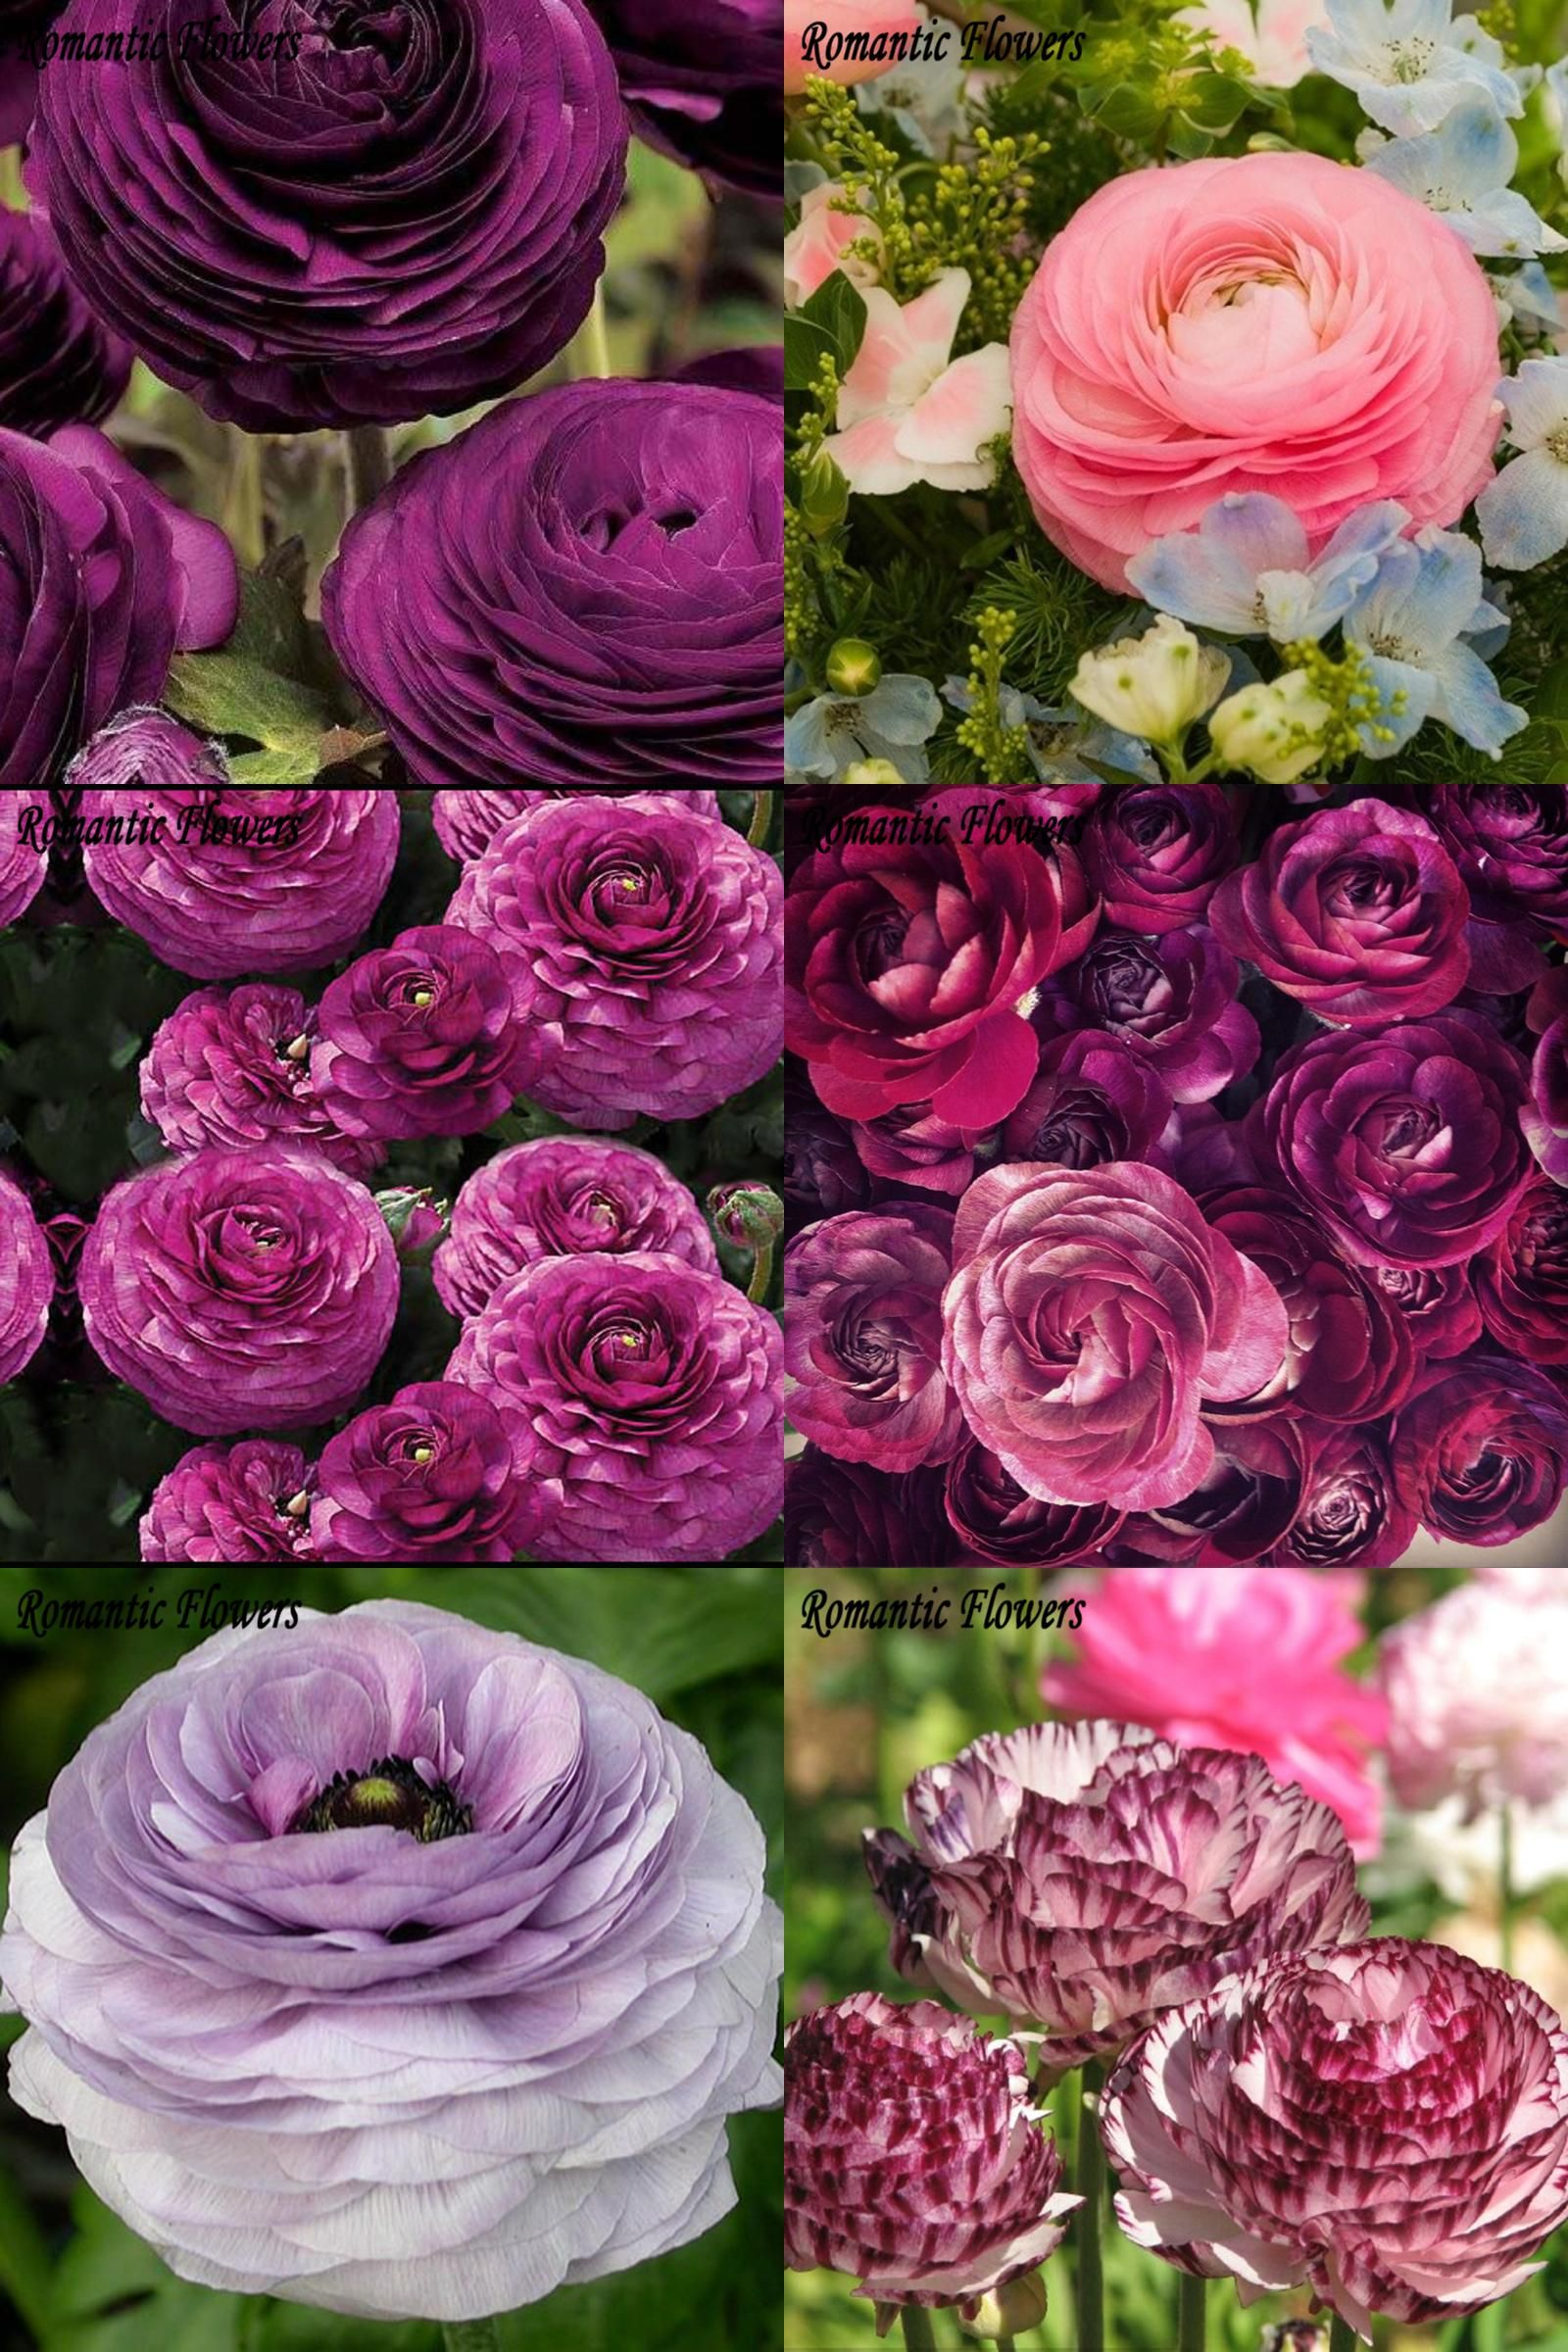 Visit To Buy 100pcs Rouge Ranunculus Flower Seeds Home Diy Persian Buttercup Plant Seeds Flower Bulbs Free Shipping Adv Bulb Flowers Flower Seeds Plants